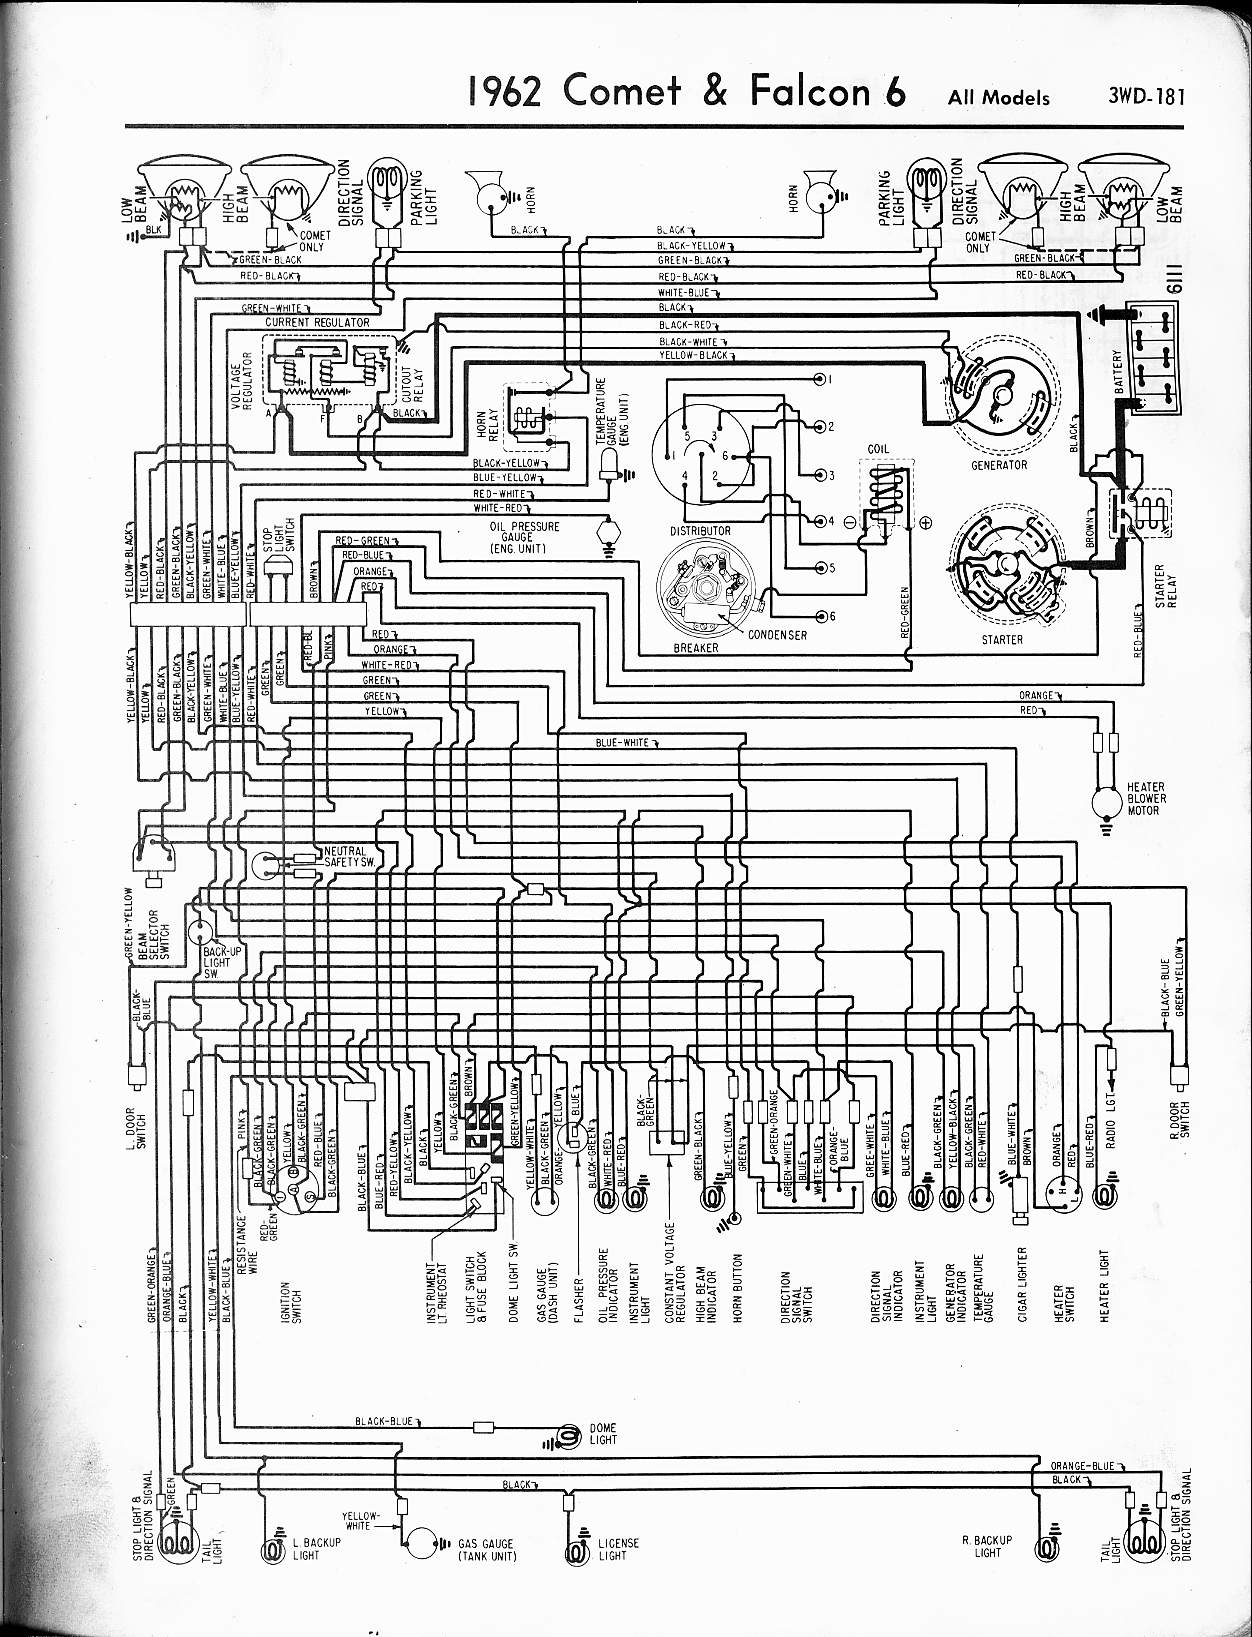 1999 Ford Au Fuse Box Diagram Wiring Schematics Wire For 05 Mercury Grand Marquis 1962 Detailed Diagrams Explorer